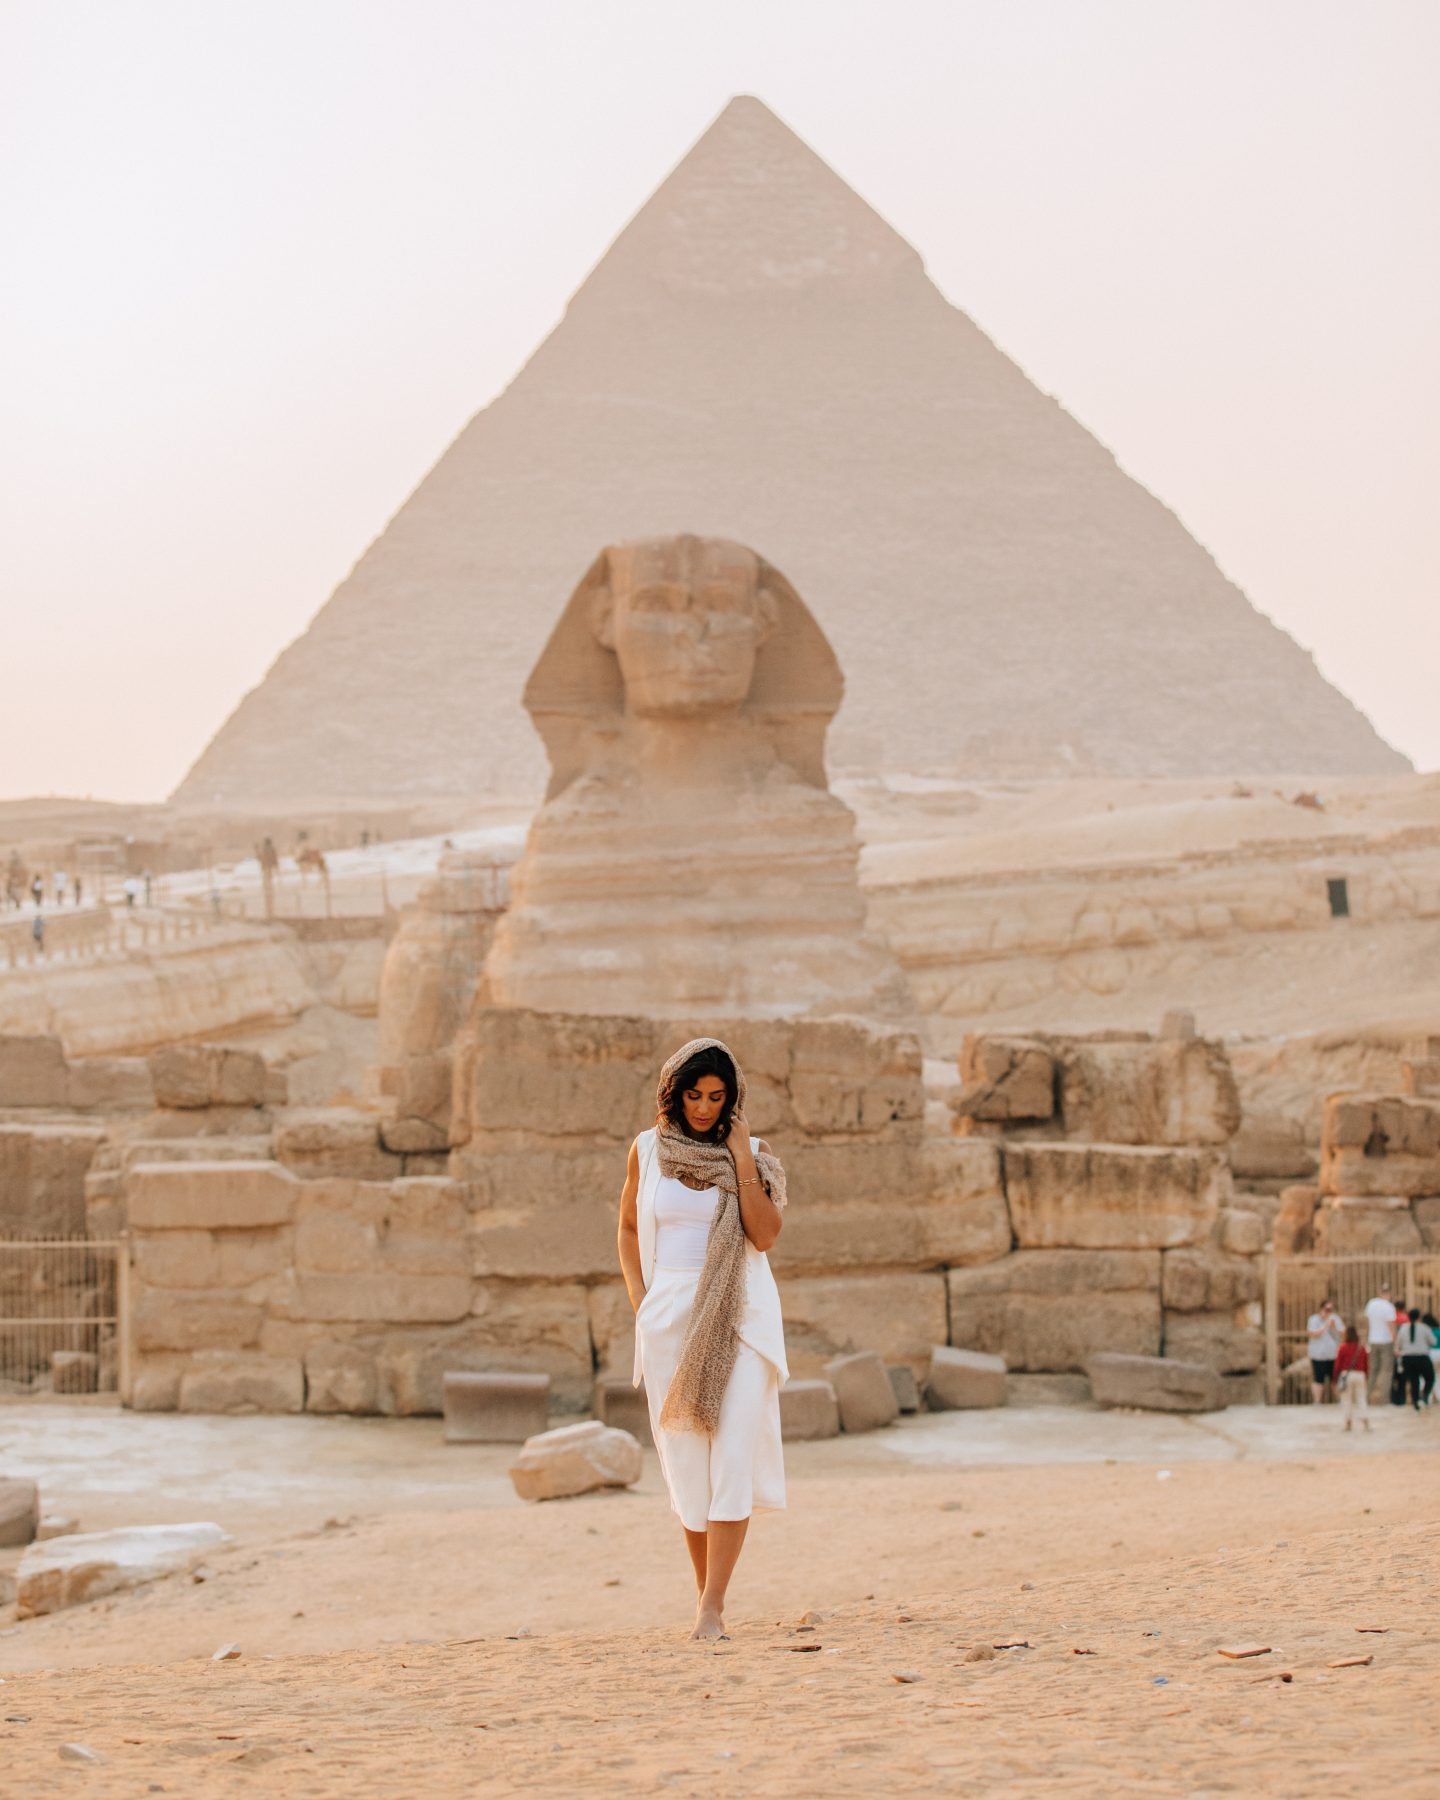 A woman walking away from the Sphinx in front of the Great Pyramid in Cairo, Egypt